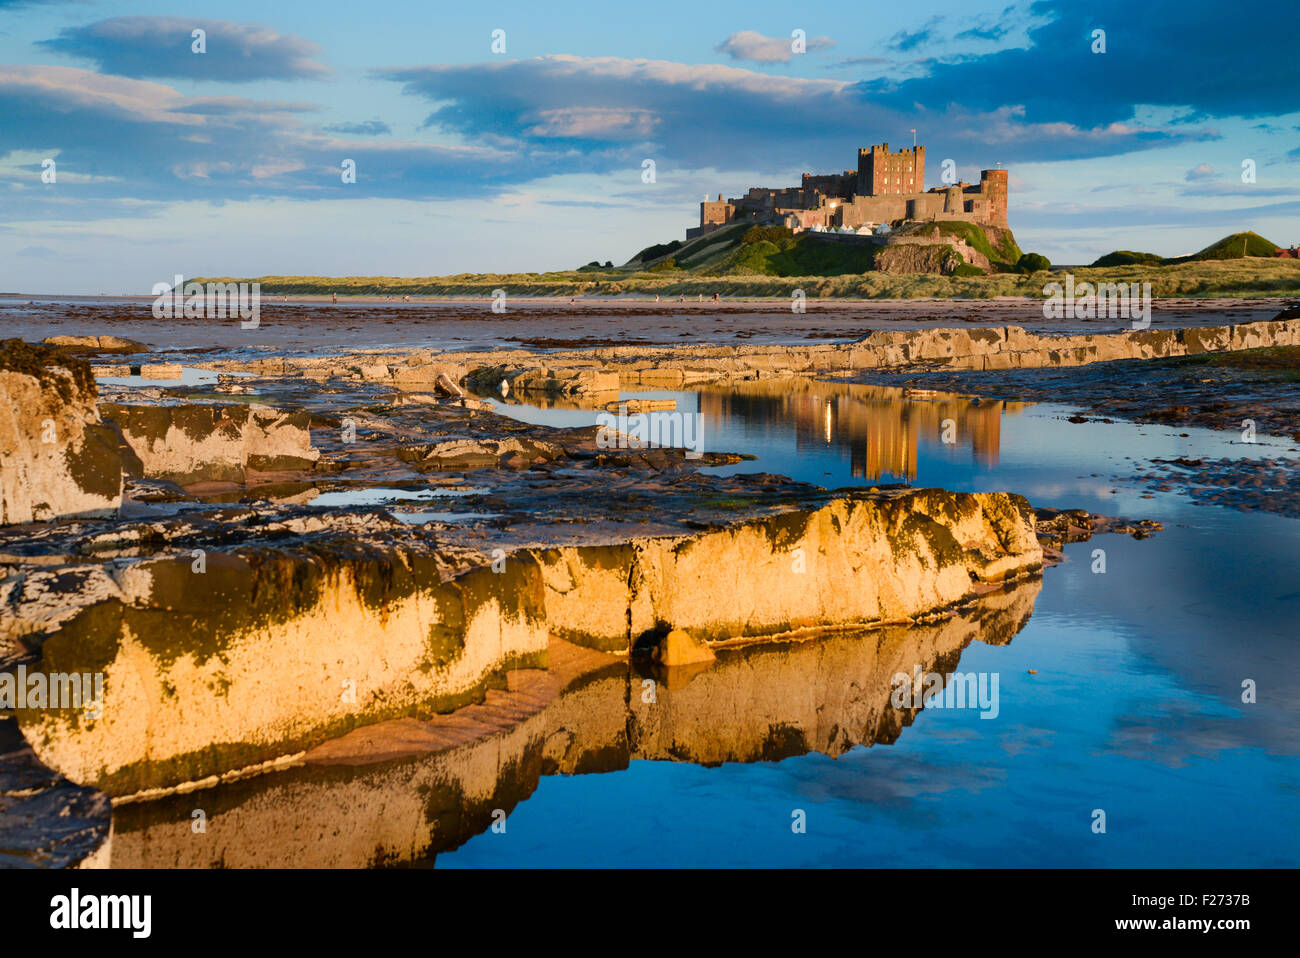 Bamburgh Castle on the north east coast of Northumberland. Once the residence of the Kings of Northumbria. - Stock Image